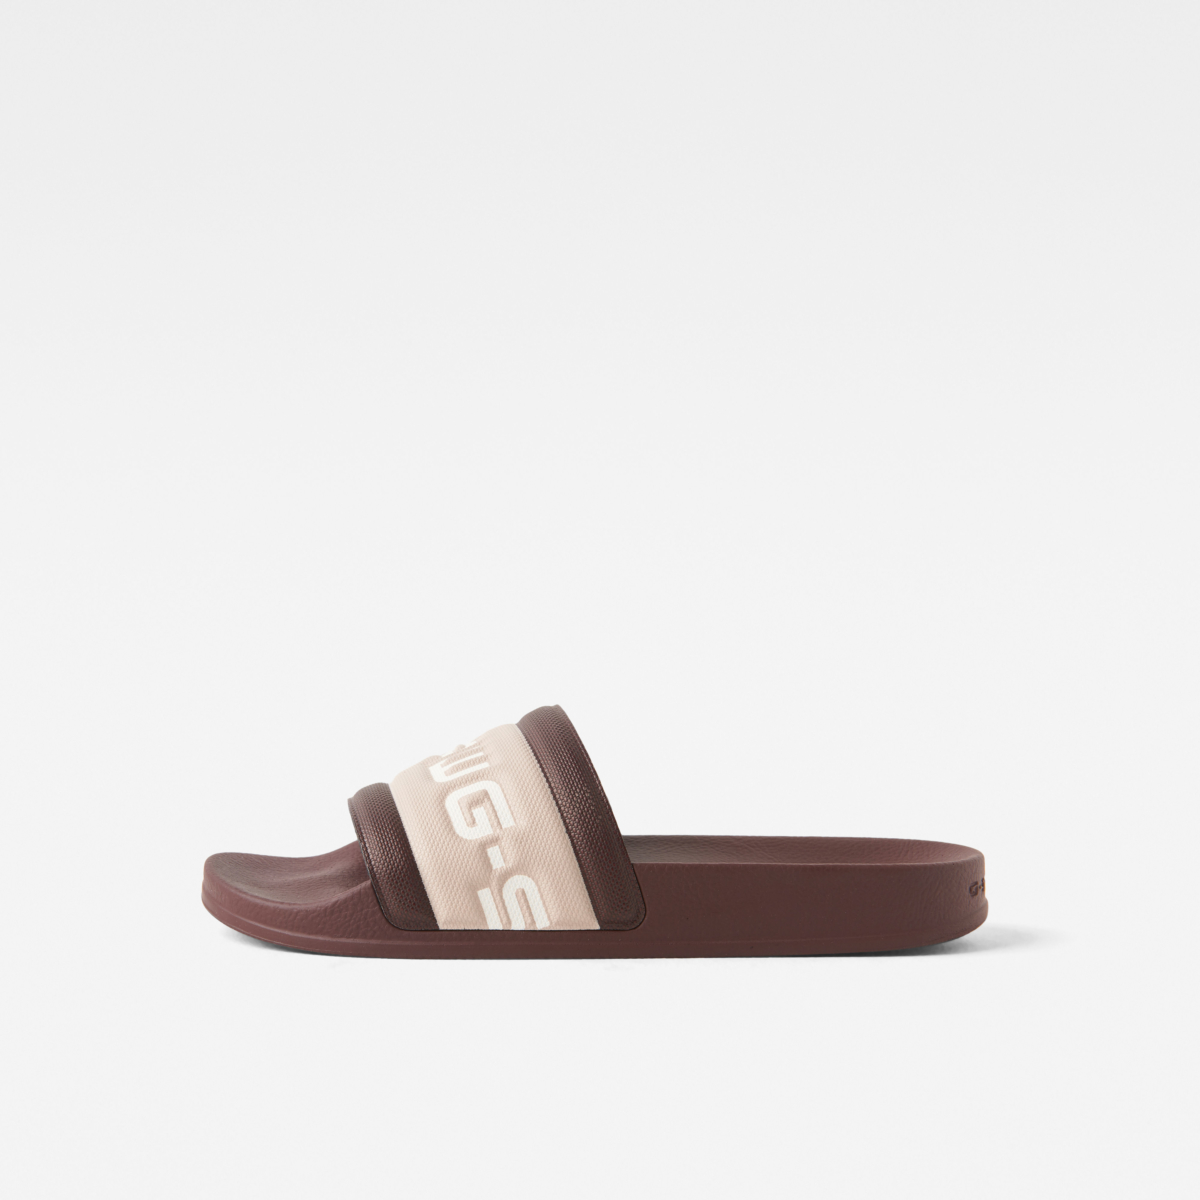 G-Star Shoes Cart Slide III Sandals Red Male Canada - GOOFASH - Mens SANDALS